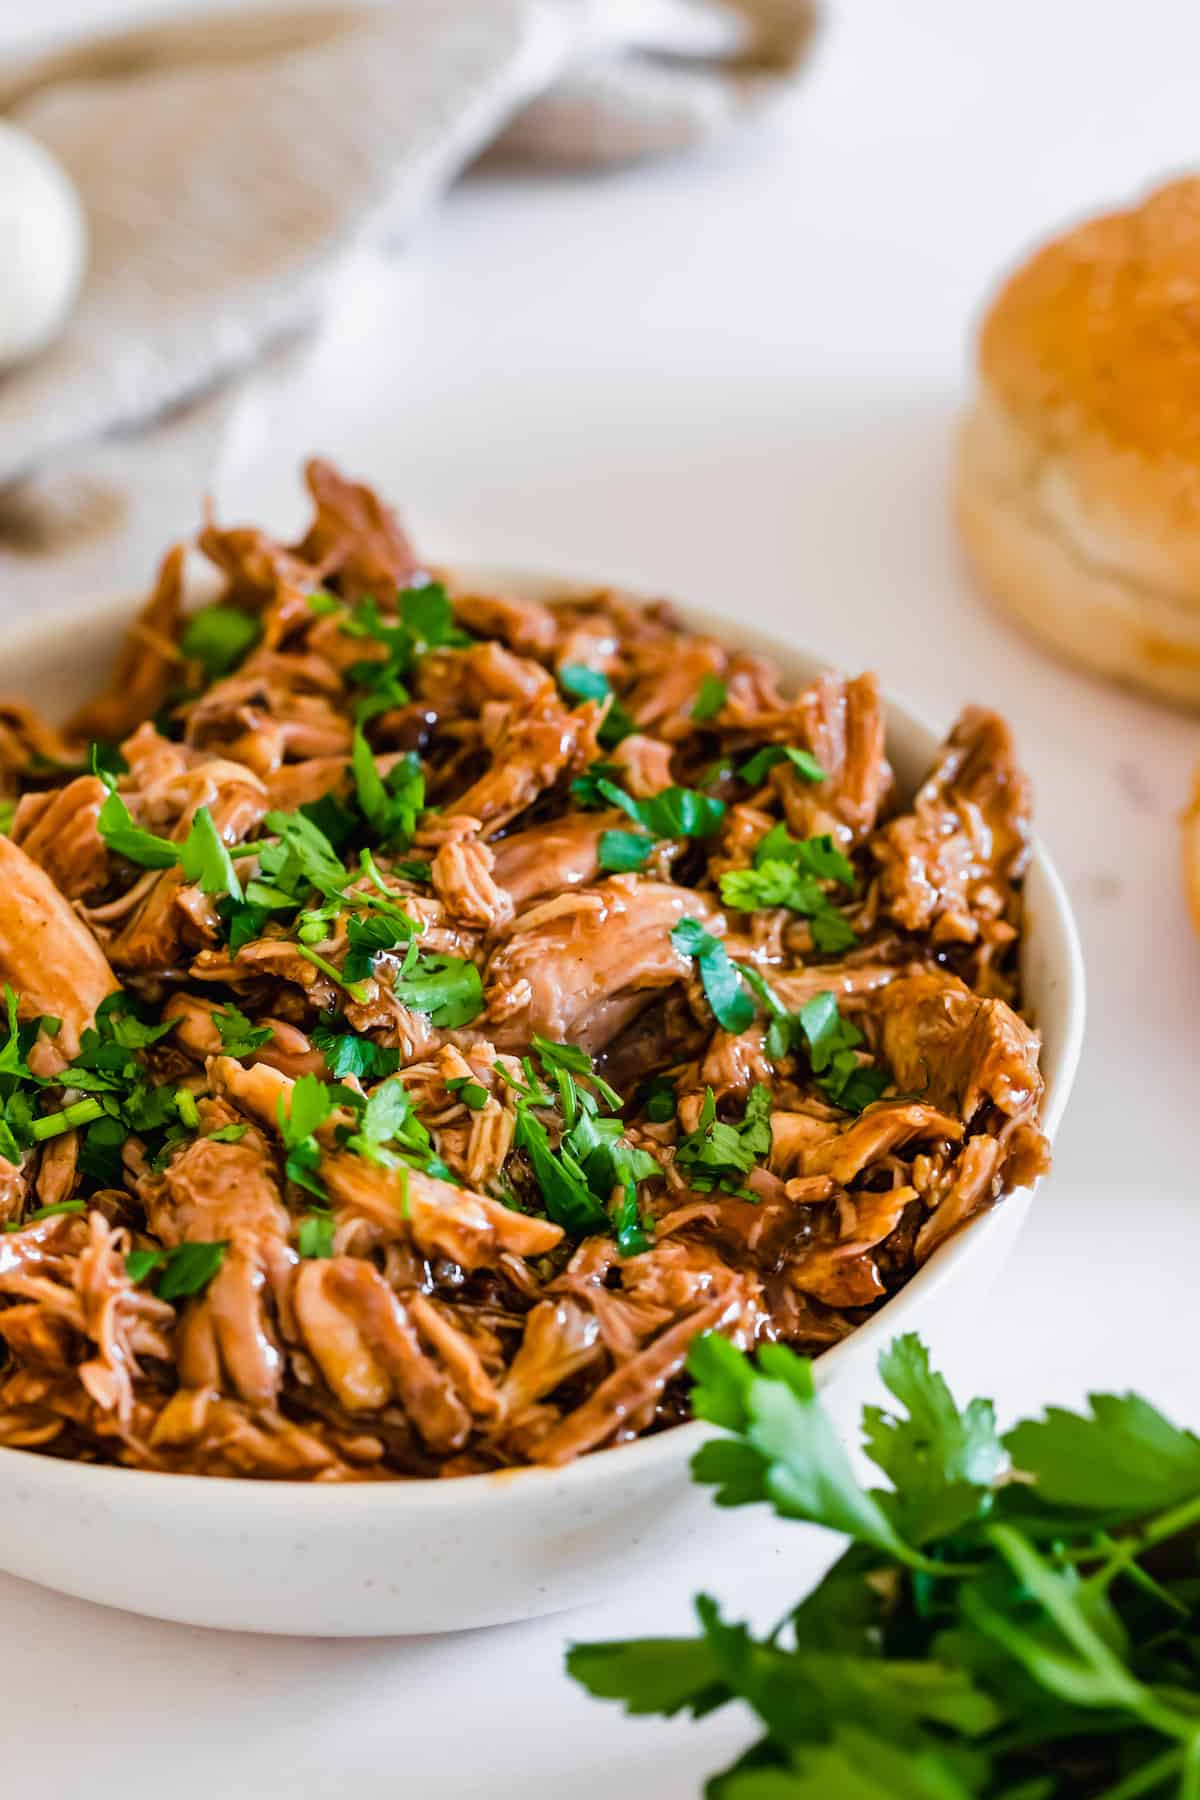 A Close-Up Shot of a Bowl of Homemade Pulled Pork